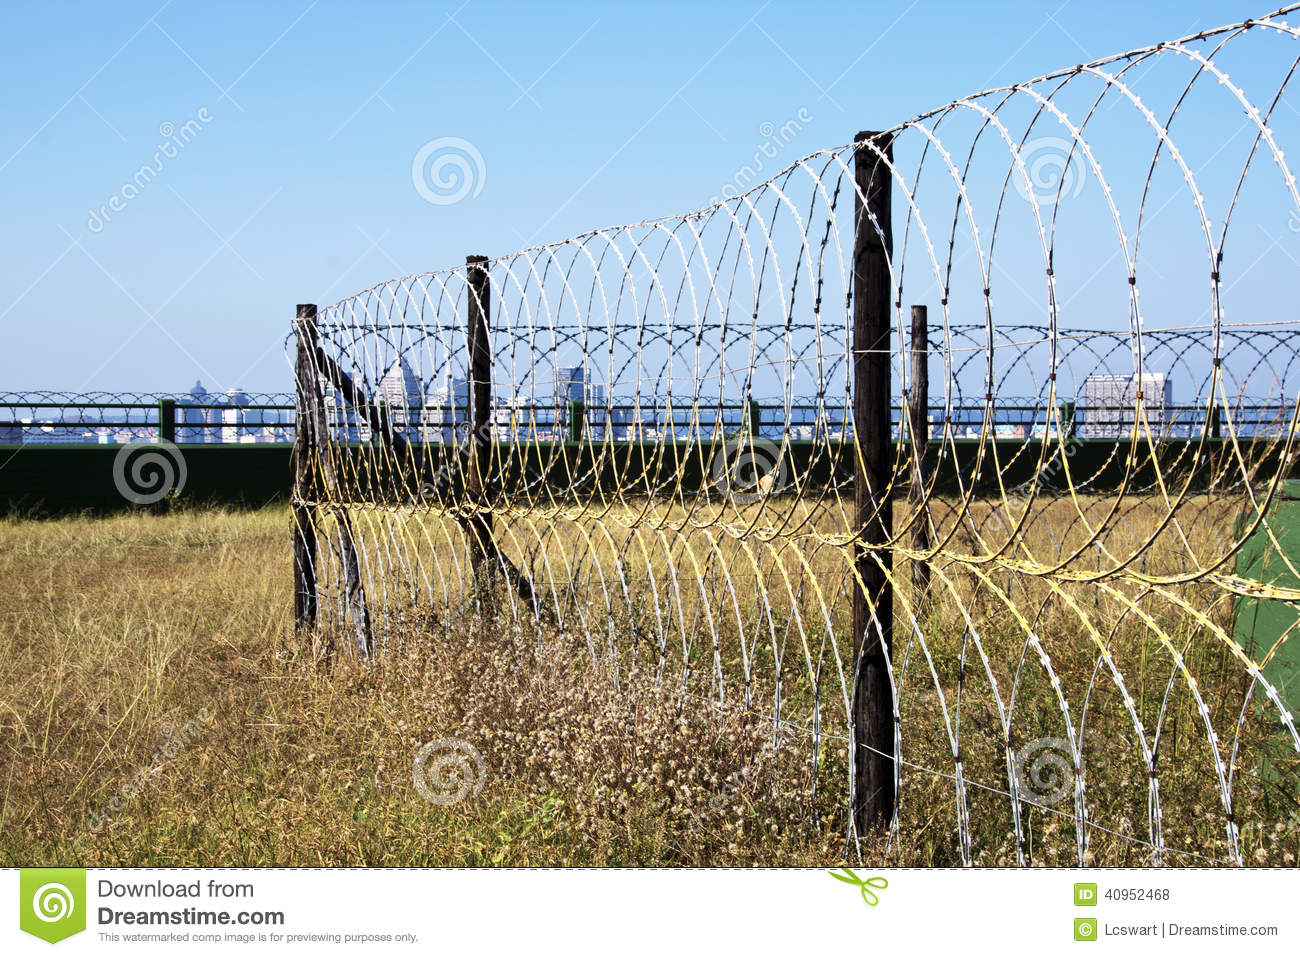 Razor Wire Security Fence Surrounding Protected Structure Stock ...